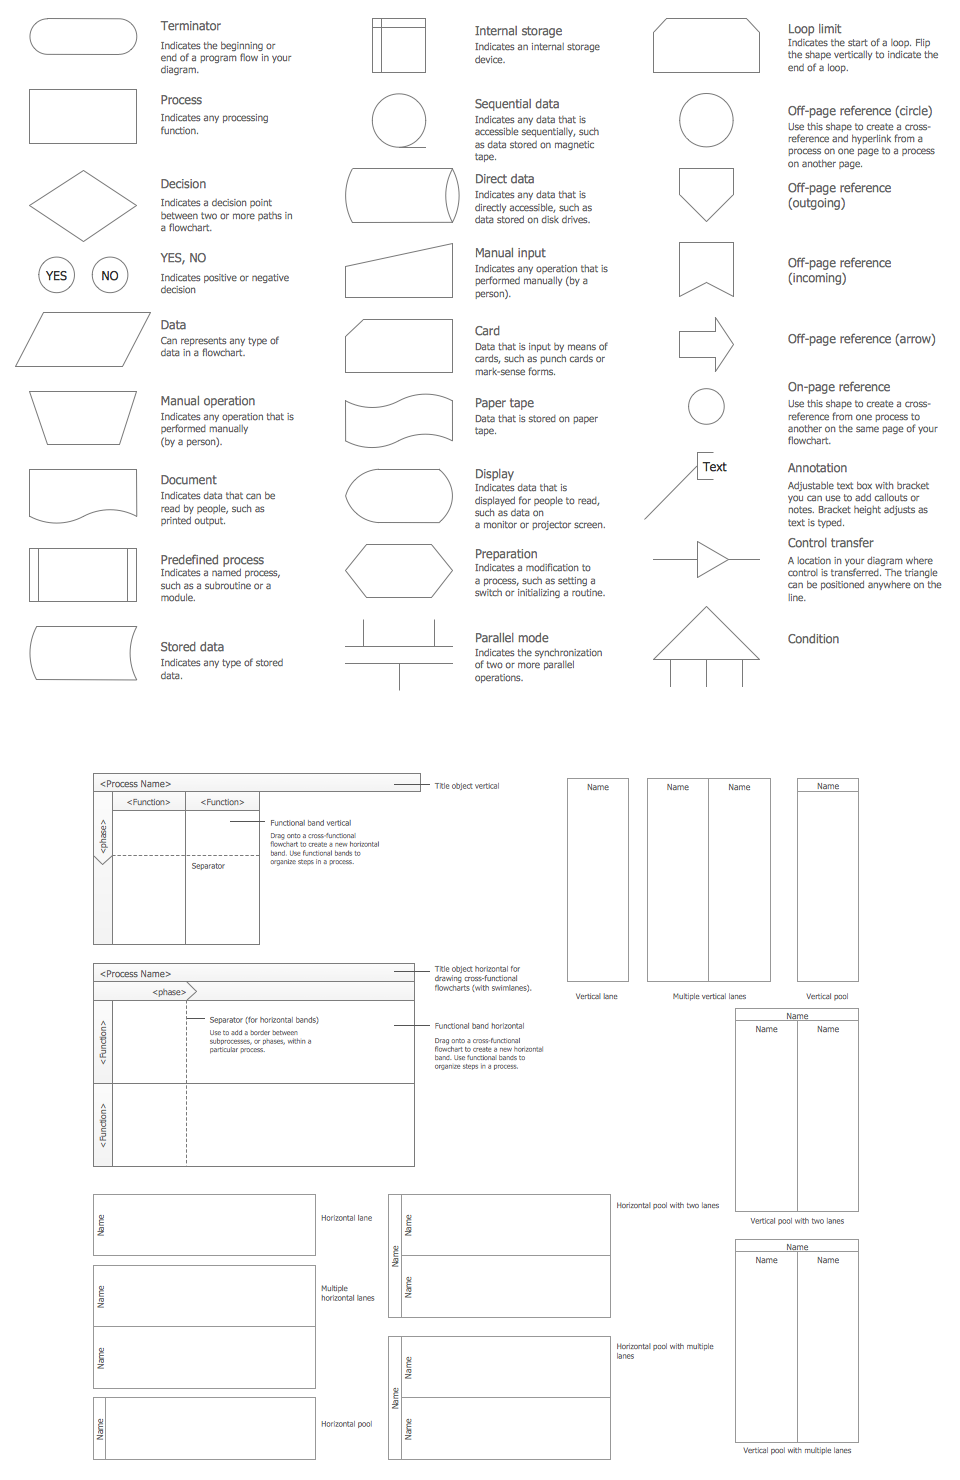 How To Create a Flow Chart in ConceptDraw | Free Trial for ...